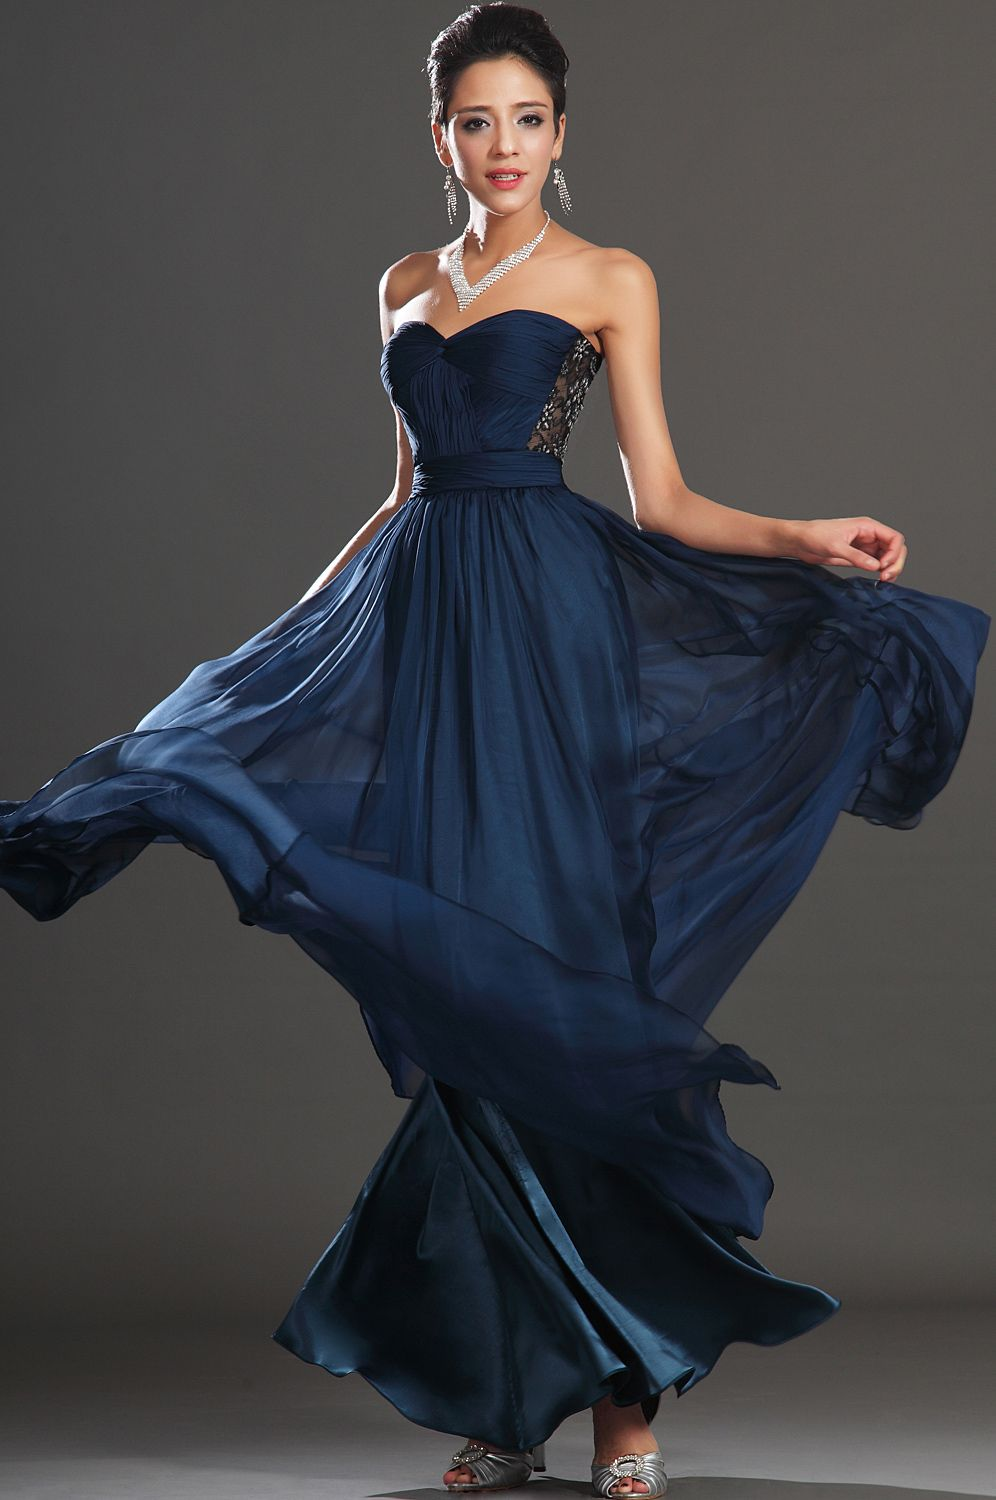 Usd edressit new gorgeous lace strapless evening dress